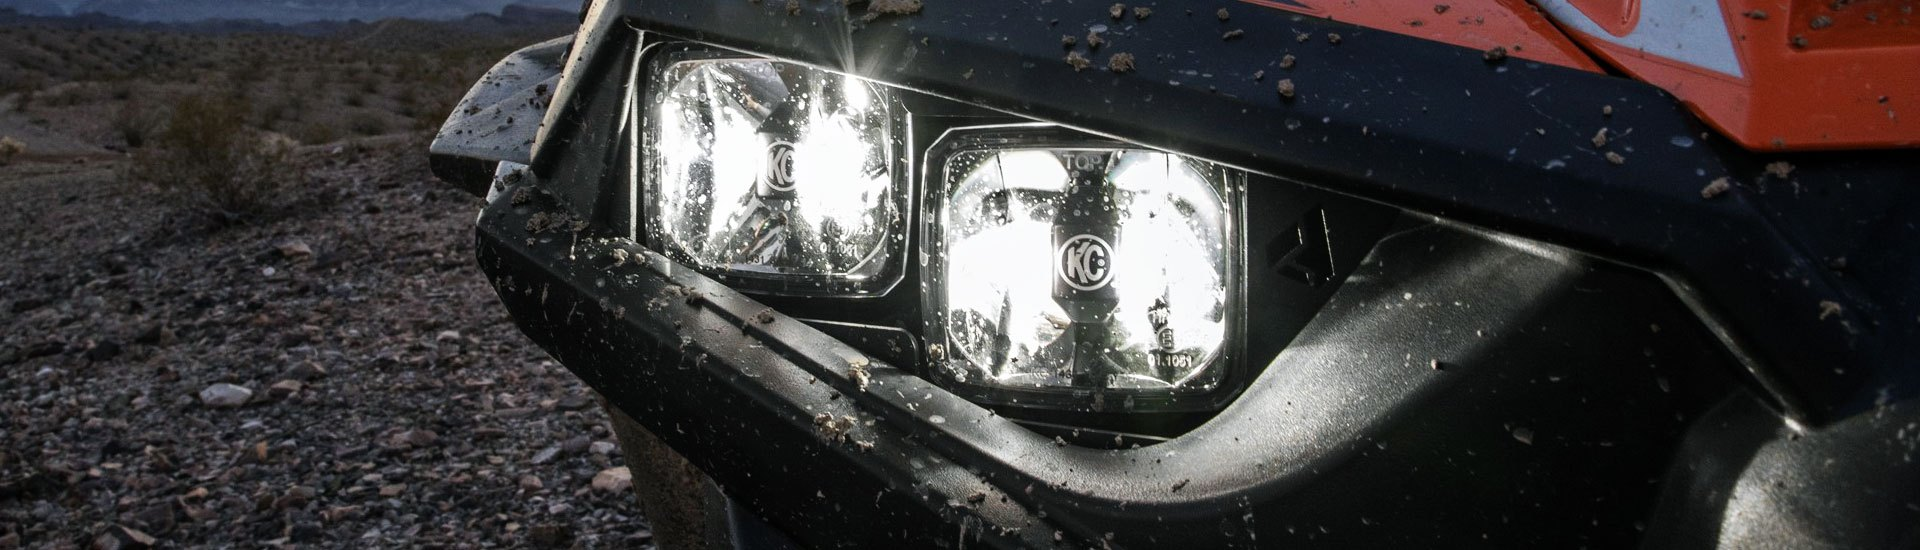 Off Road Lights Led Hid Fog Driving Light Bars Additionally Bar Wiring Harness On Kc Kit 4 11